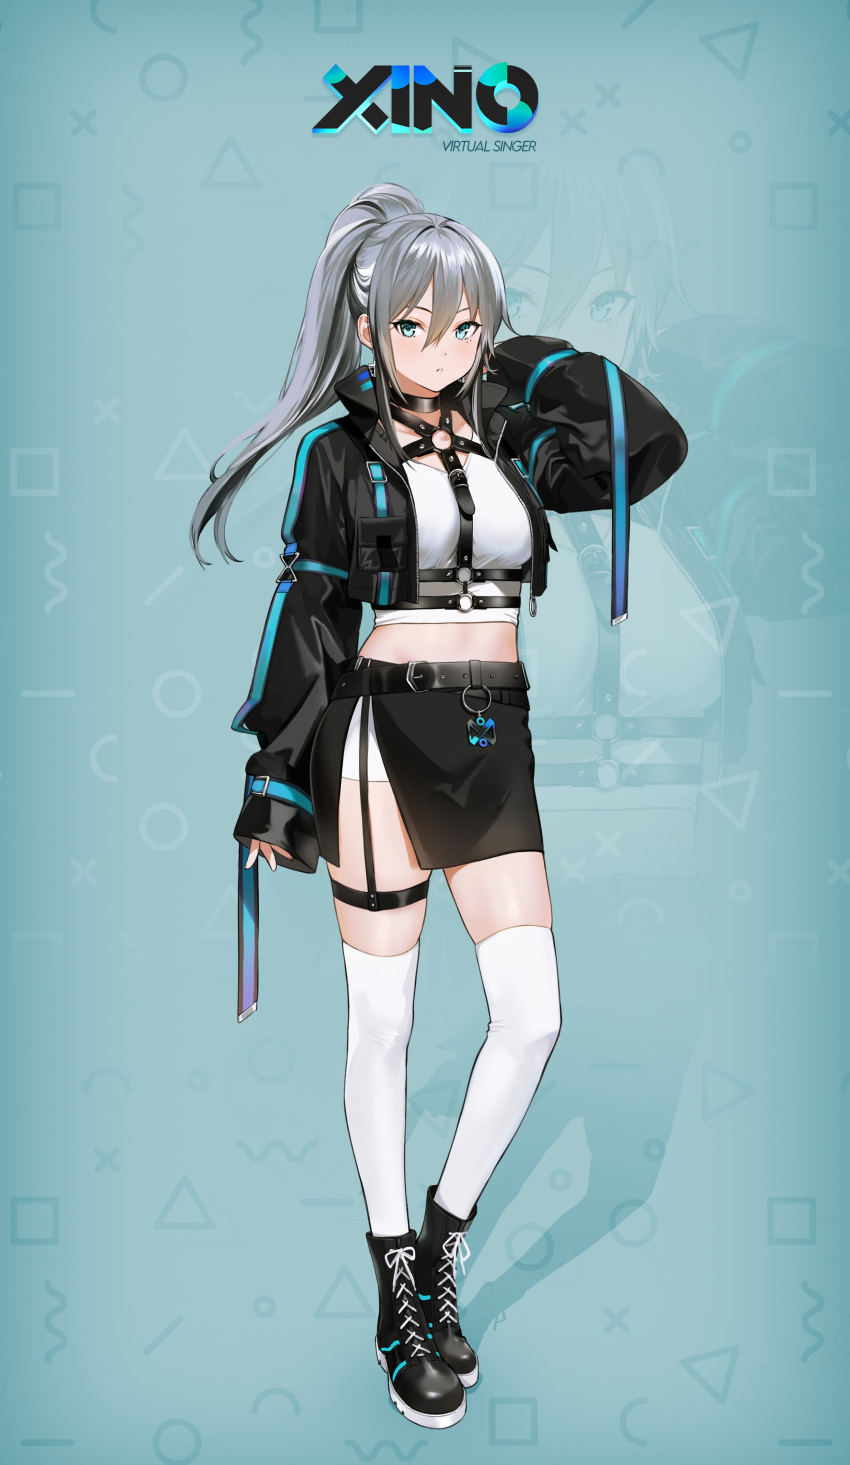 1girl absurdres arm_up bangs belt black_belt black_footwear black_jacket black_skirt blue_background blue_eyes blush boots breasts character_name choker collar collared_jacket commentary_request crop_top cropped_jacket cross cross_earrings ear_piercing earrings english_commentary grey_hair hair_between_eyes highres jacket jewelry long_hair long_sleeves looking_at_viewer medium_breasts mery_(yangmalgage) mixed-language_commentary open_clothes parted_lips piercing pocket ponytail ruvixia shoelaces sidelocks simple_background skirt solo standing thigh-highs thigh_strap virtual_youtuber white_legwear xino_(ruvixia)